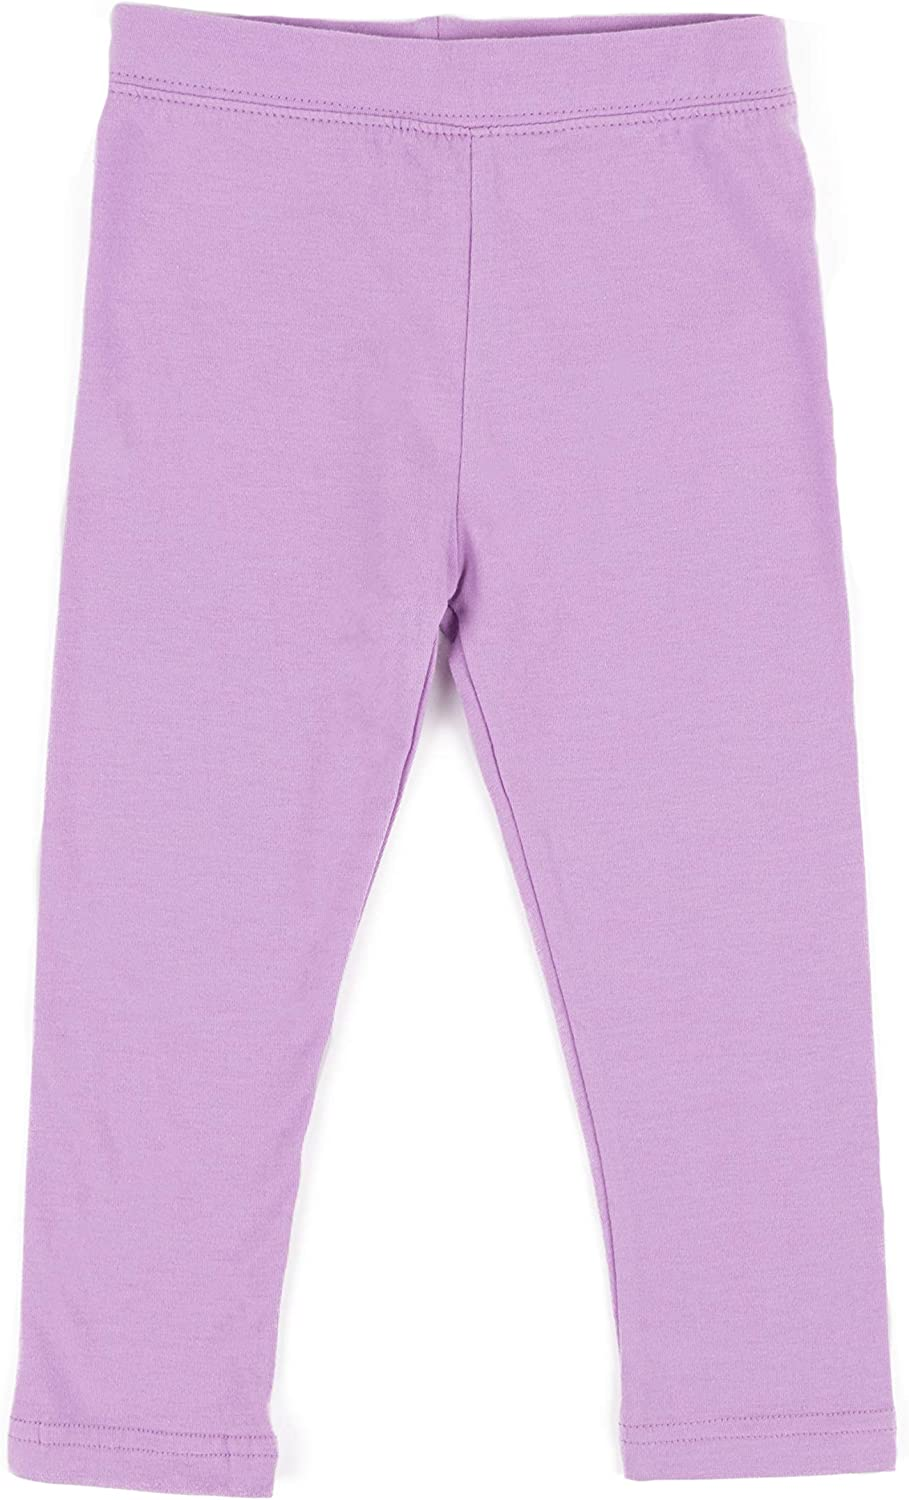 Leveret Girls Legging Cotton Ankle Toddler Pants Kids Length Inexpensive Max 43% OFF